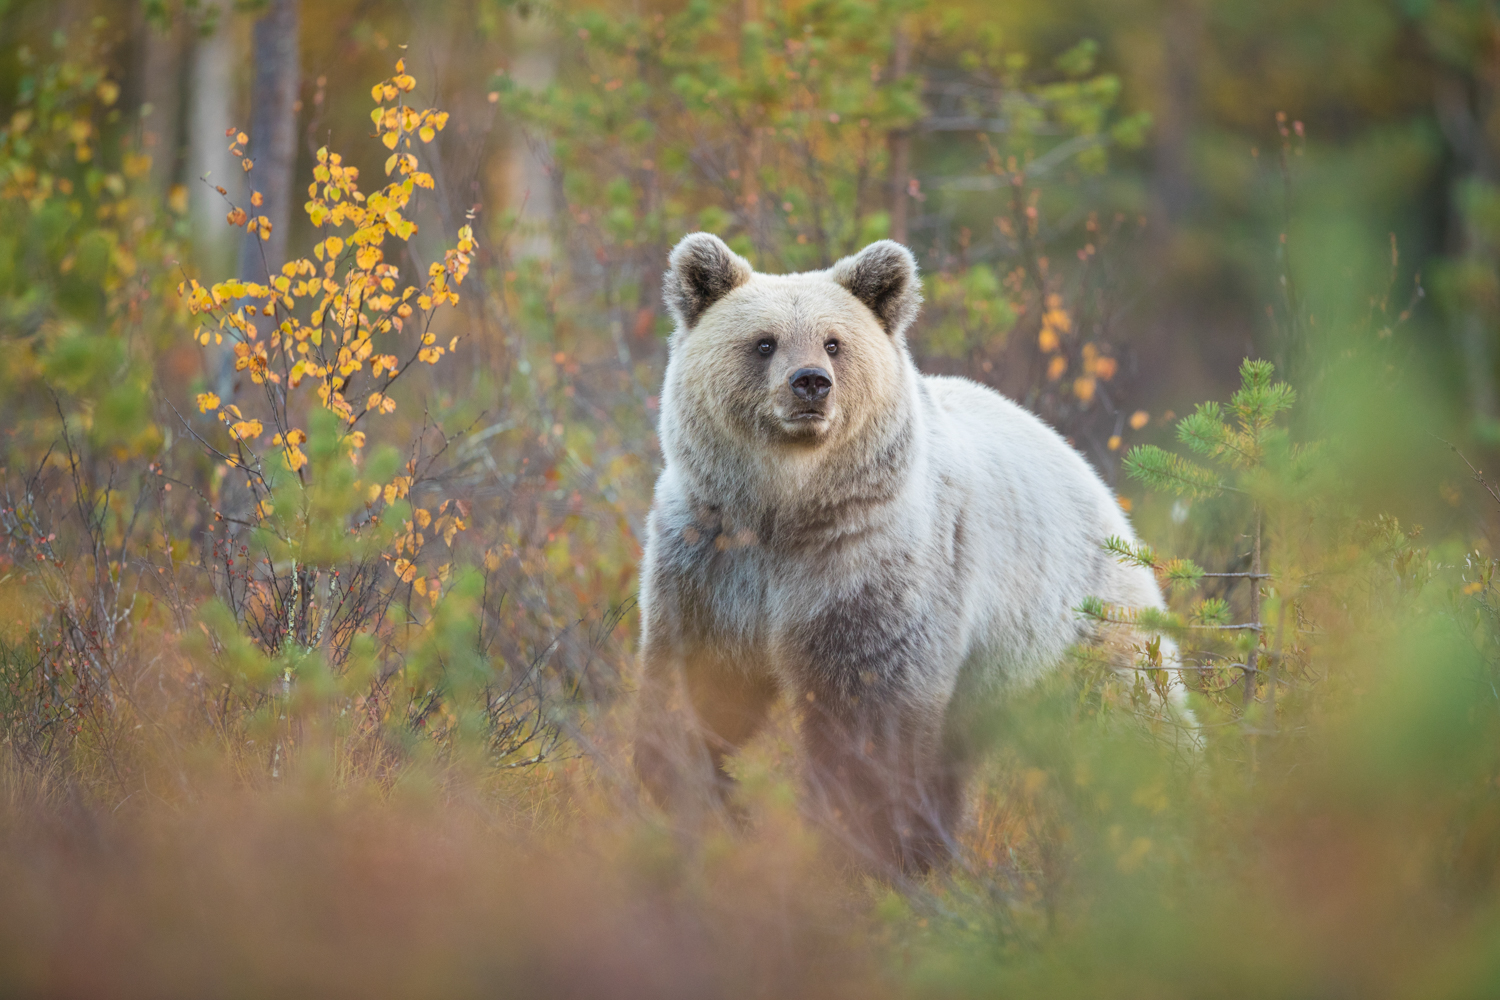 Brown_Bear_MG_0208-4.jpg